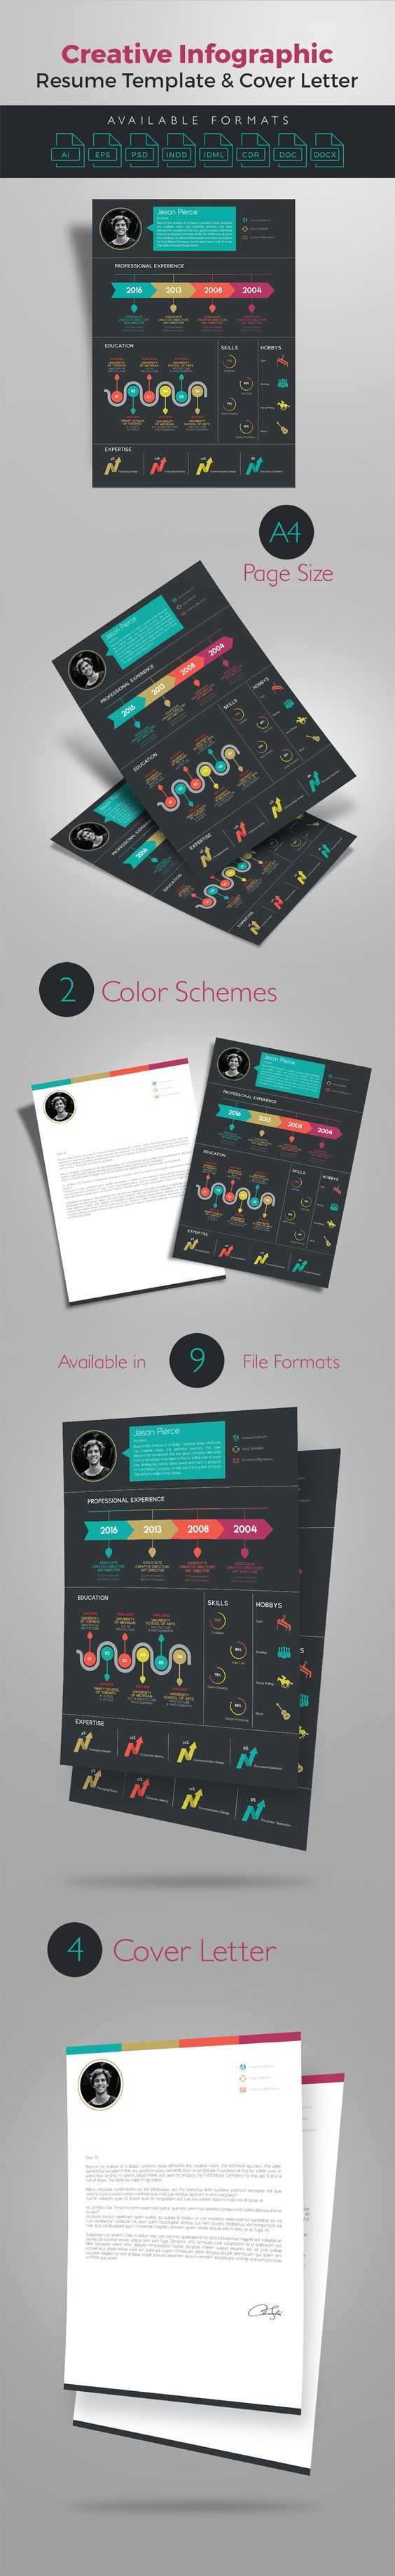 receptionist sample resume%0A Creative Infographic Resume Template With Cover Letter